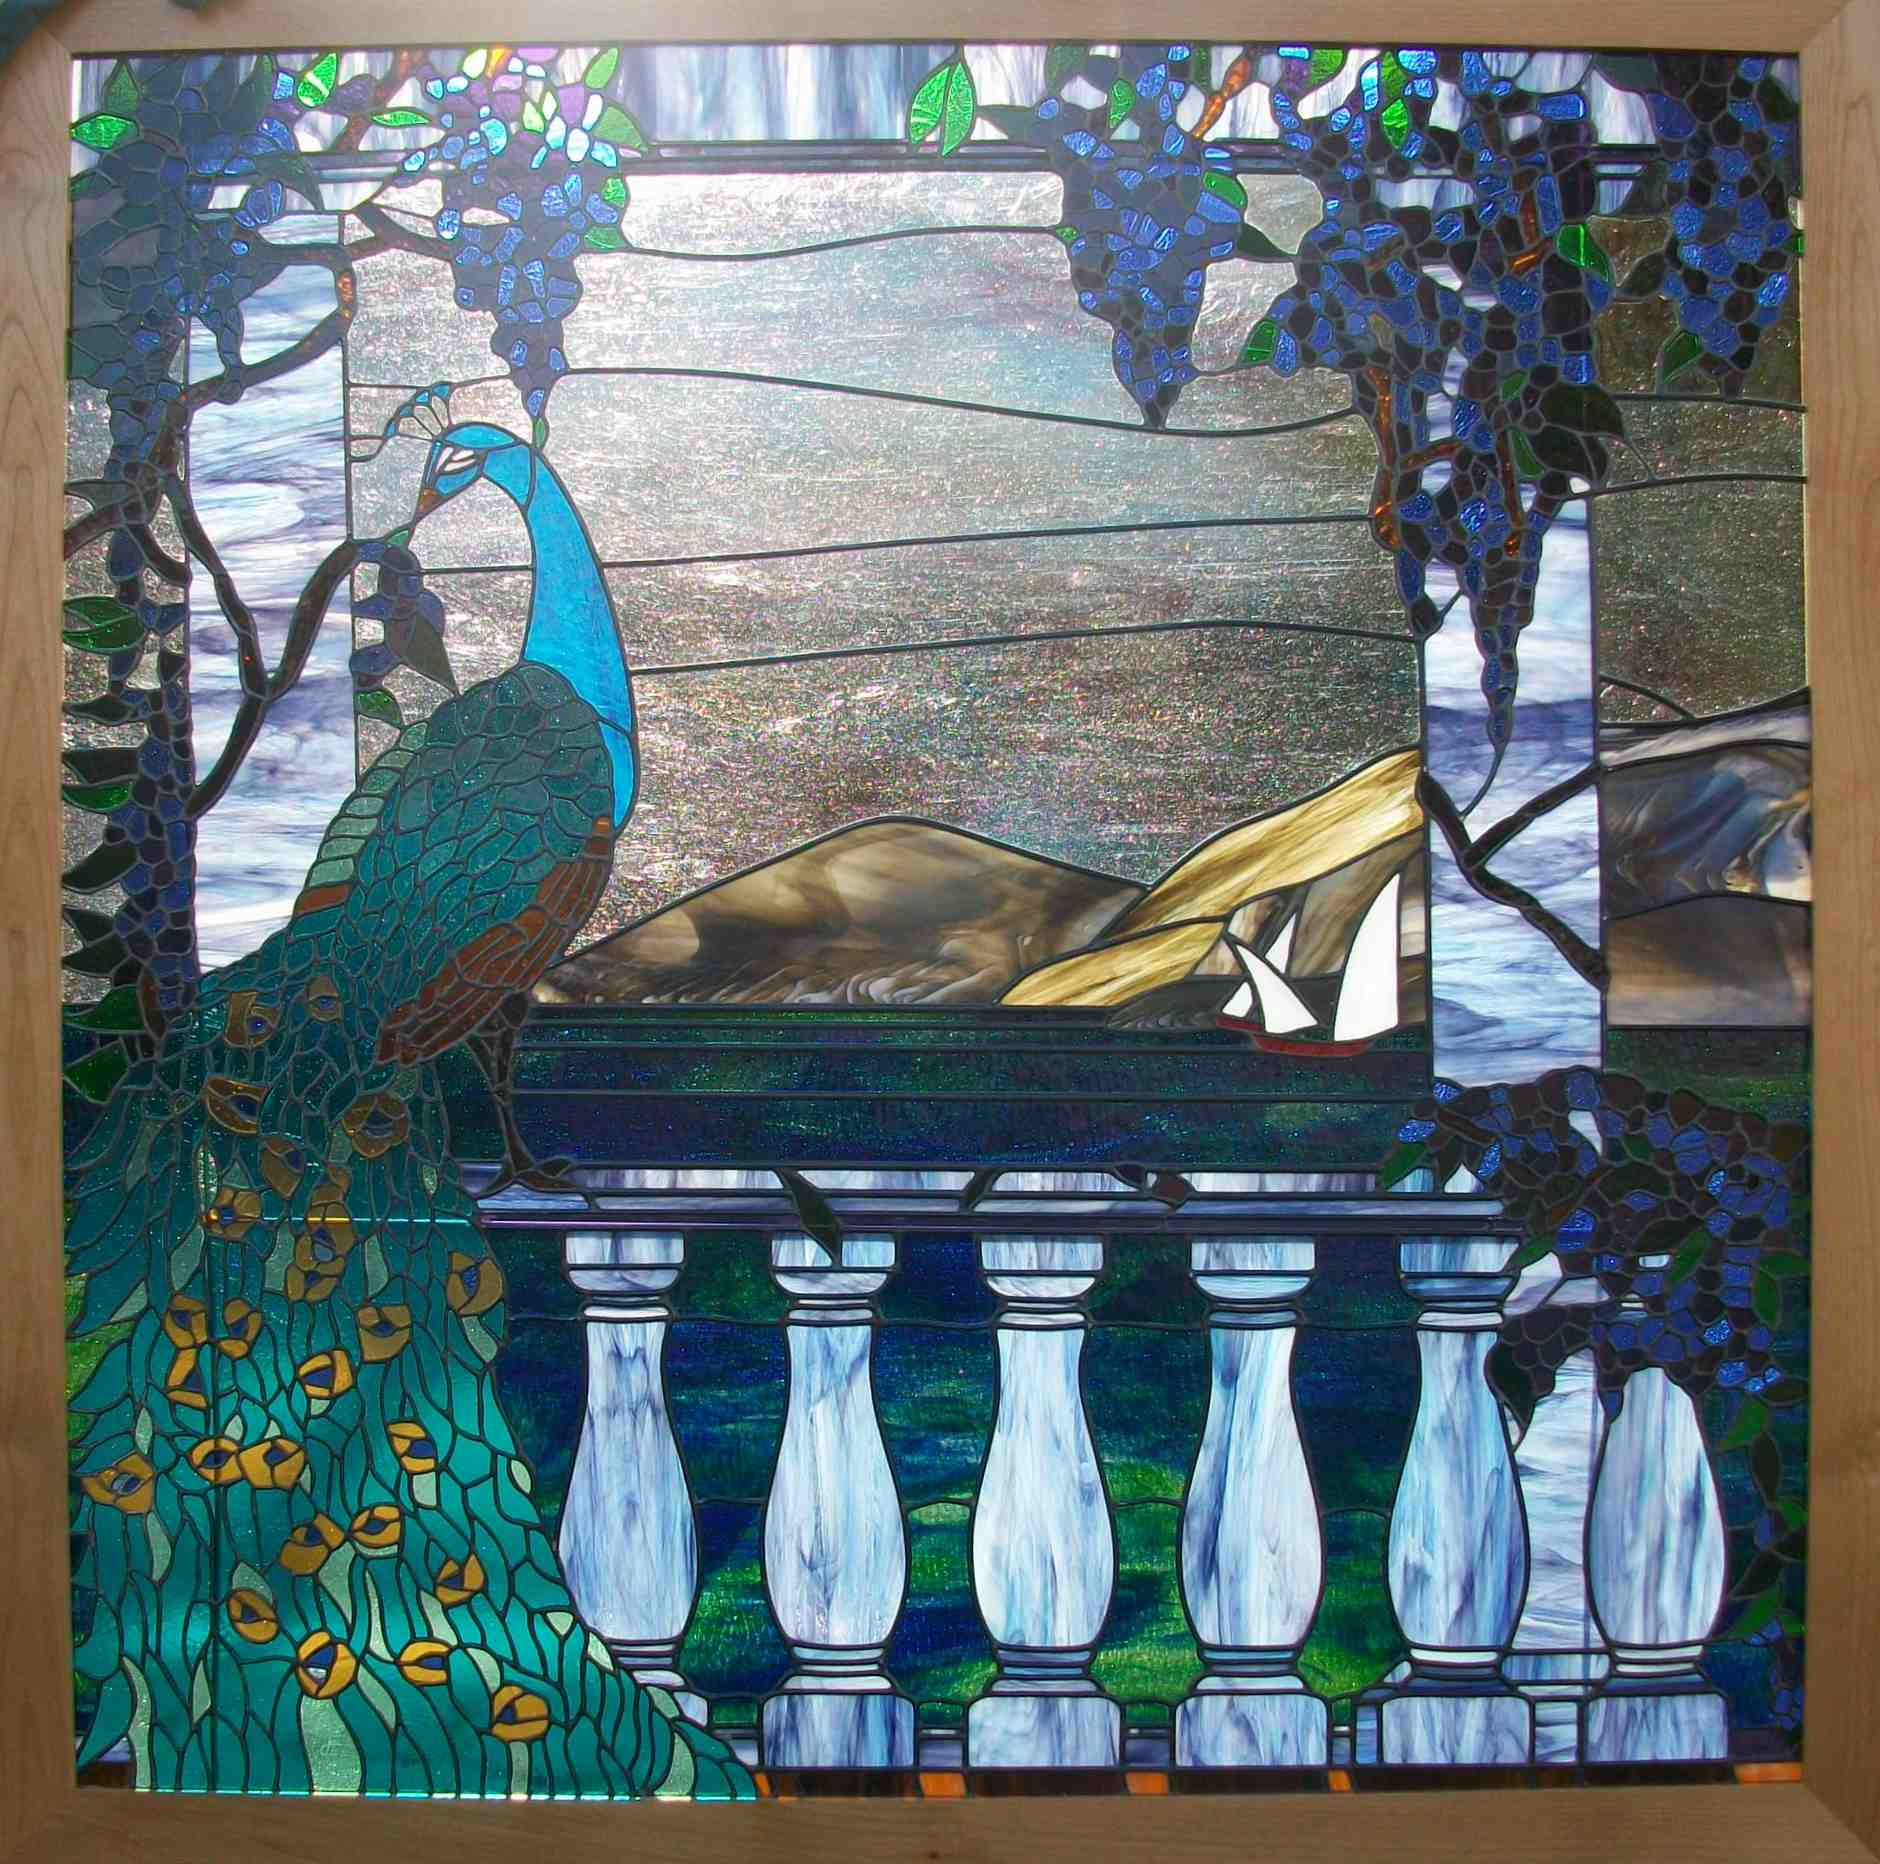 Stained Glass Window, Tiffany Style, with Peacock, Ocean, Sailboats